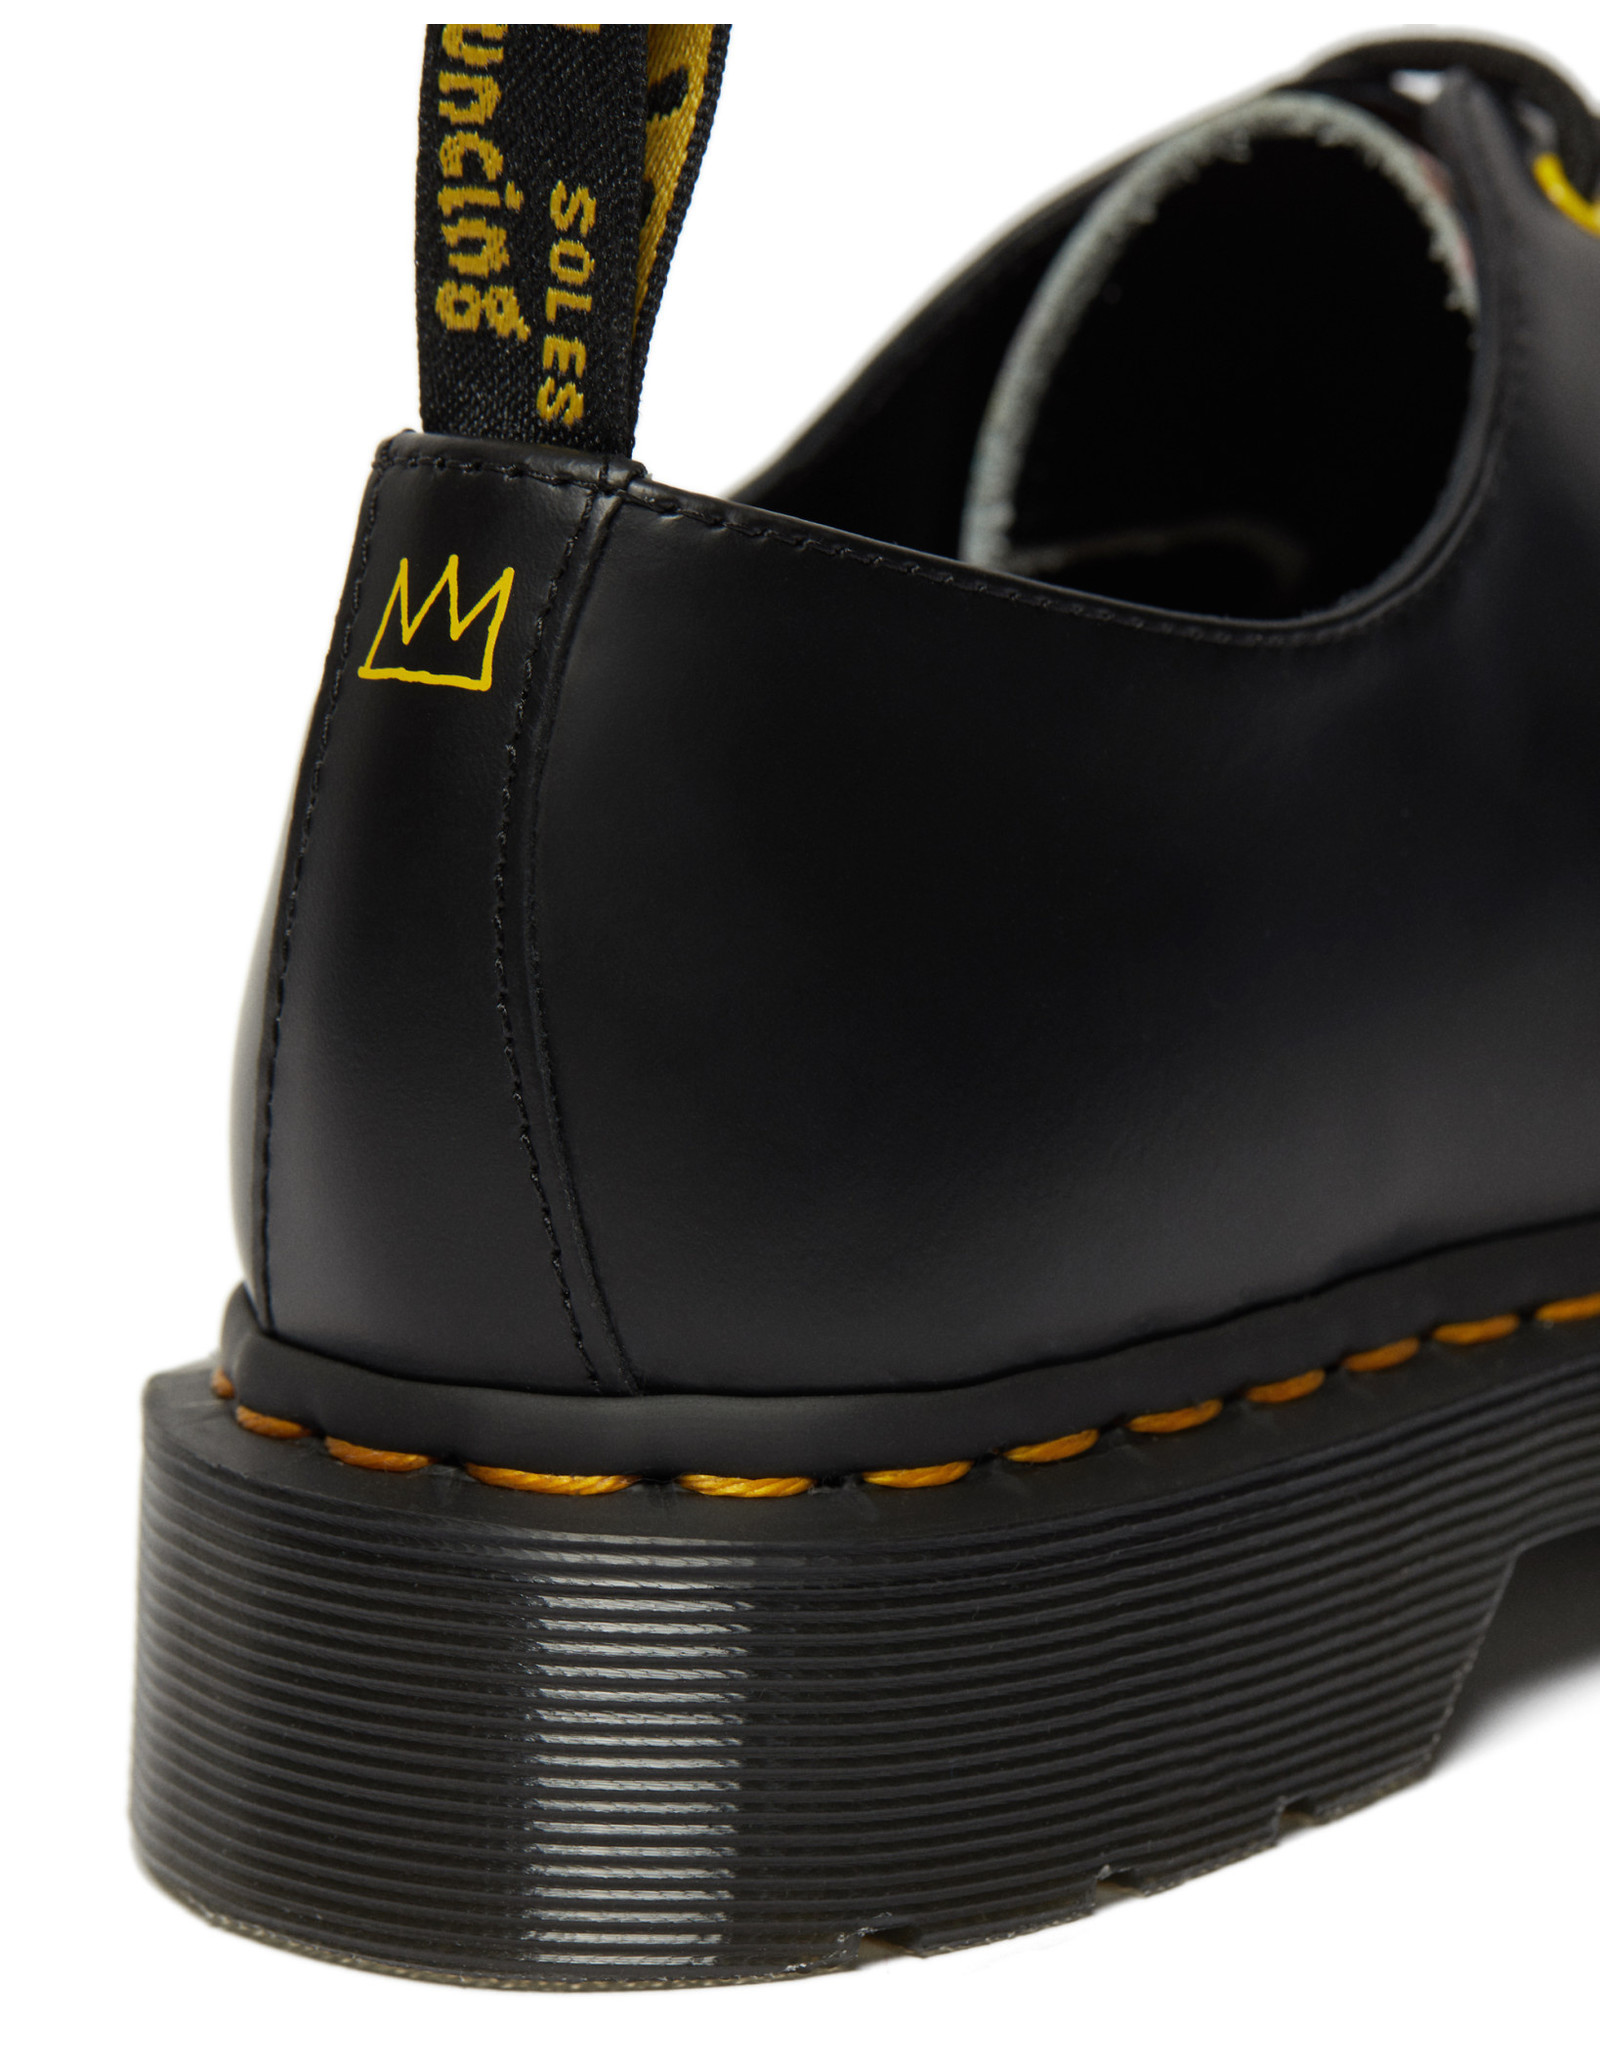 DR. MARTENS 1461 BASQUIAT WHITE & BLACK BACKHAND & SMOOTH  301BAS-R26320001